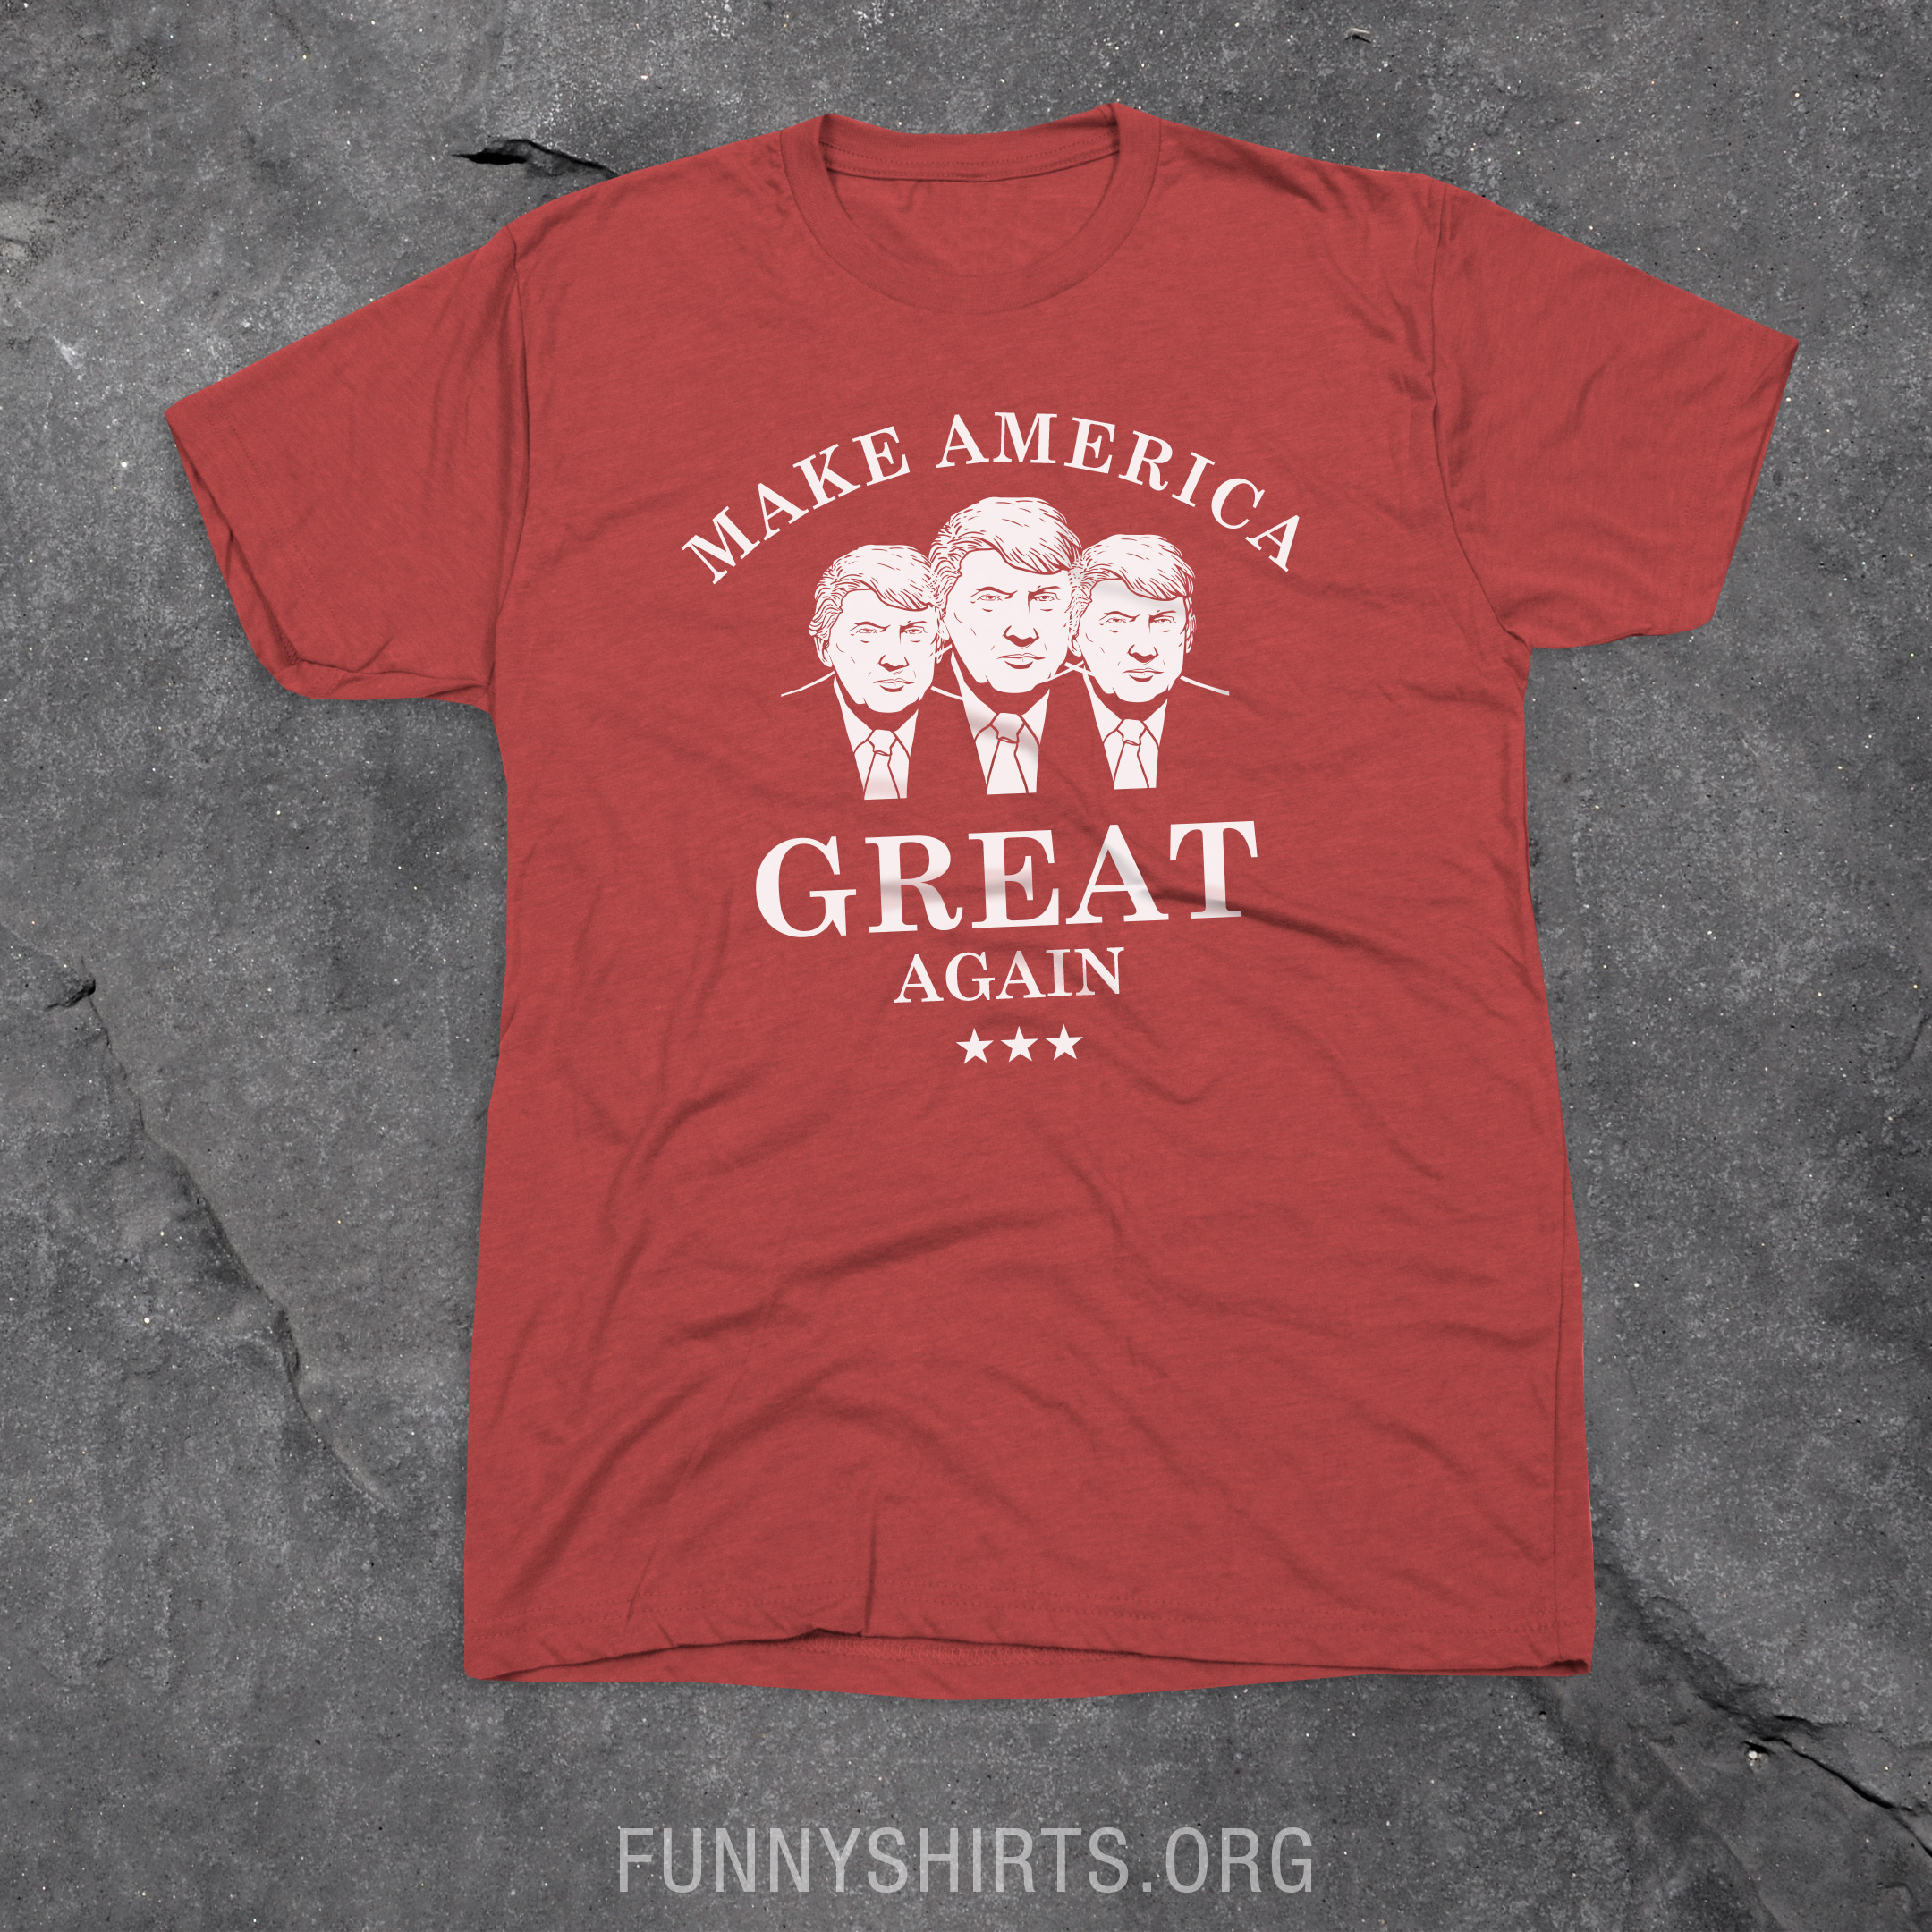 The Best Donald Trump Shirts